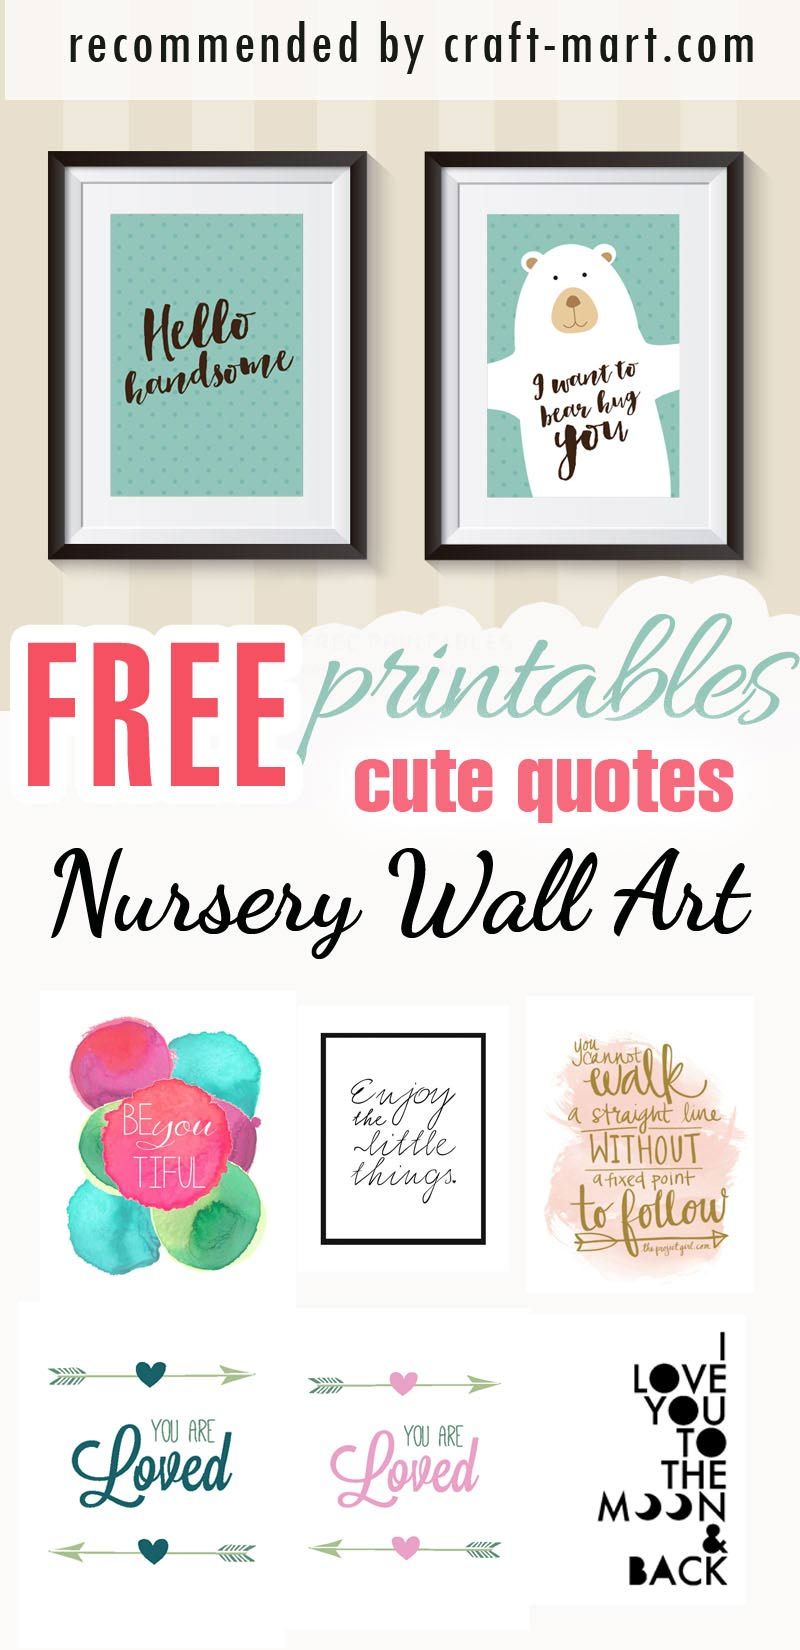 picture regarding Free Printable Nursery Art called 100+ Most straightforward No cost Nursery Printables and Wall Artwork - Craft-Mart